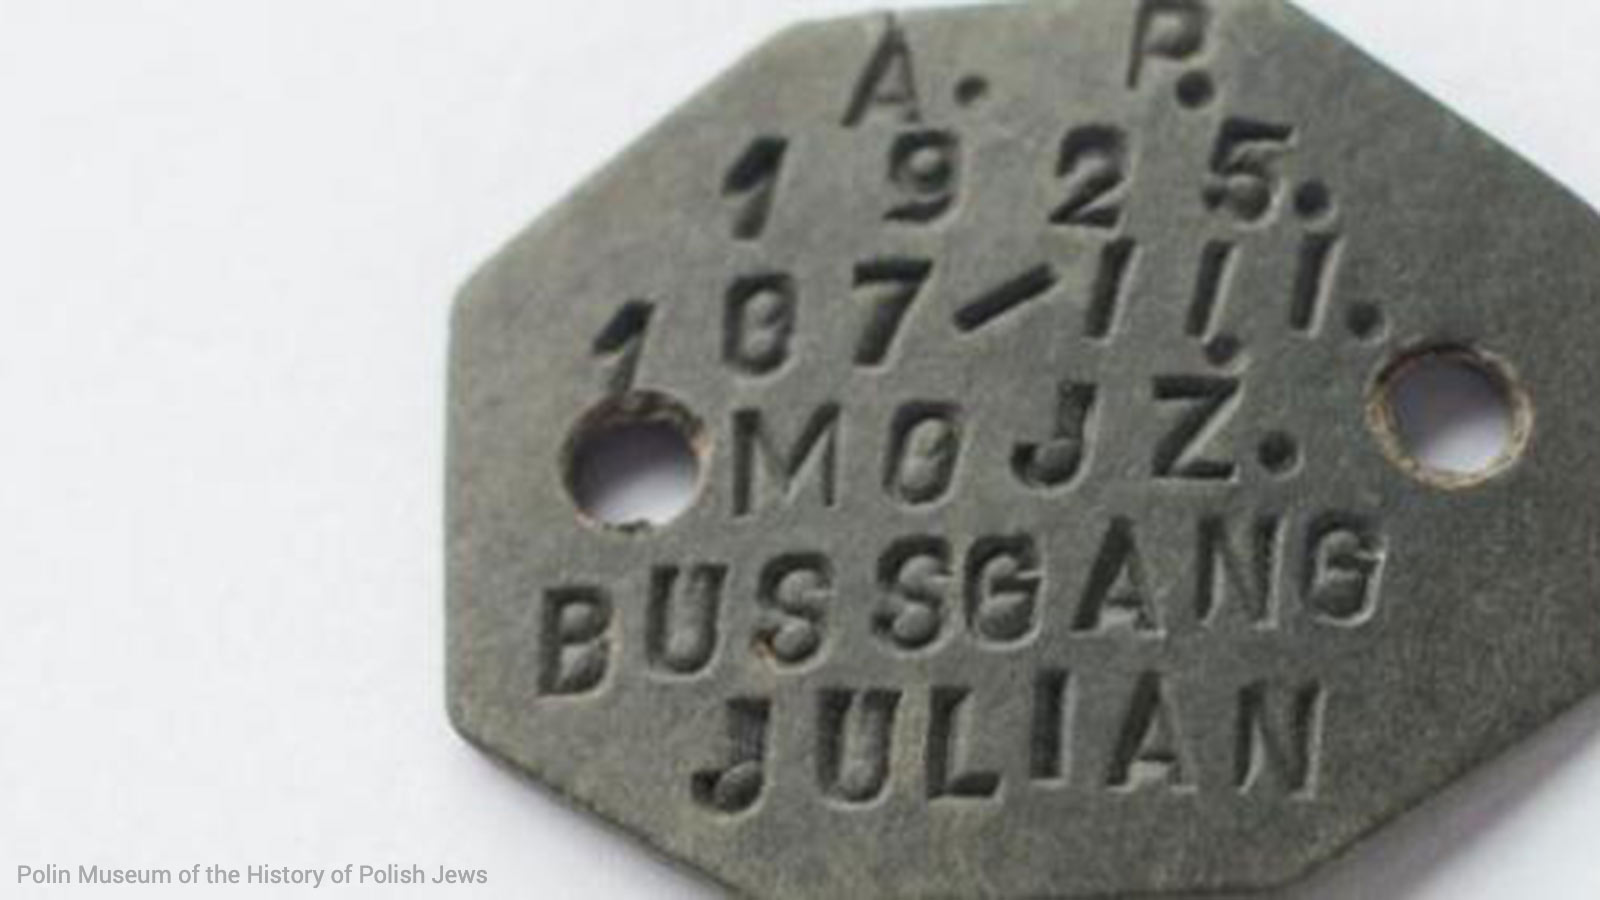 Dog tag of a Polish soldier who fought in the Second World War